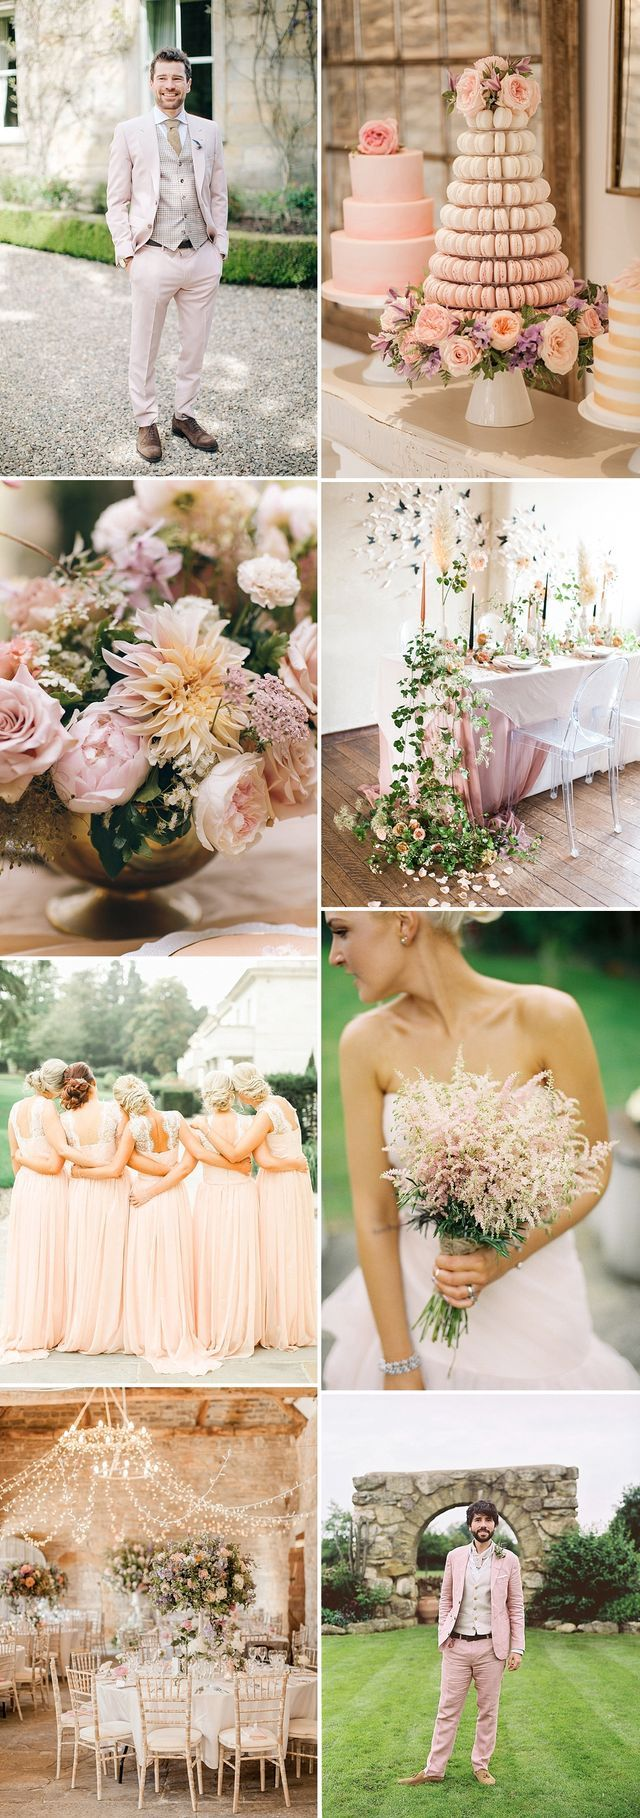 Perfect Blush Colour Themes For Your Wedding Day | Rock My Wedding | Bloglovin'